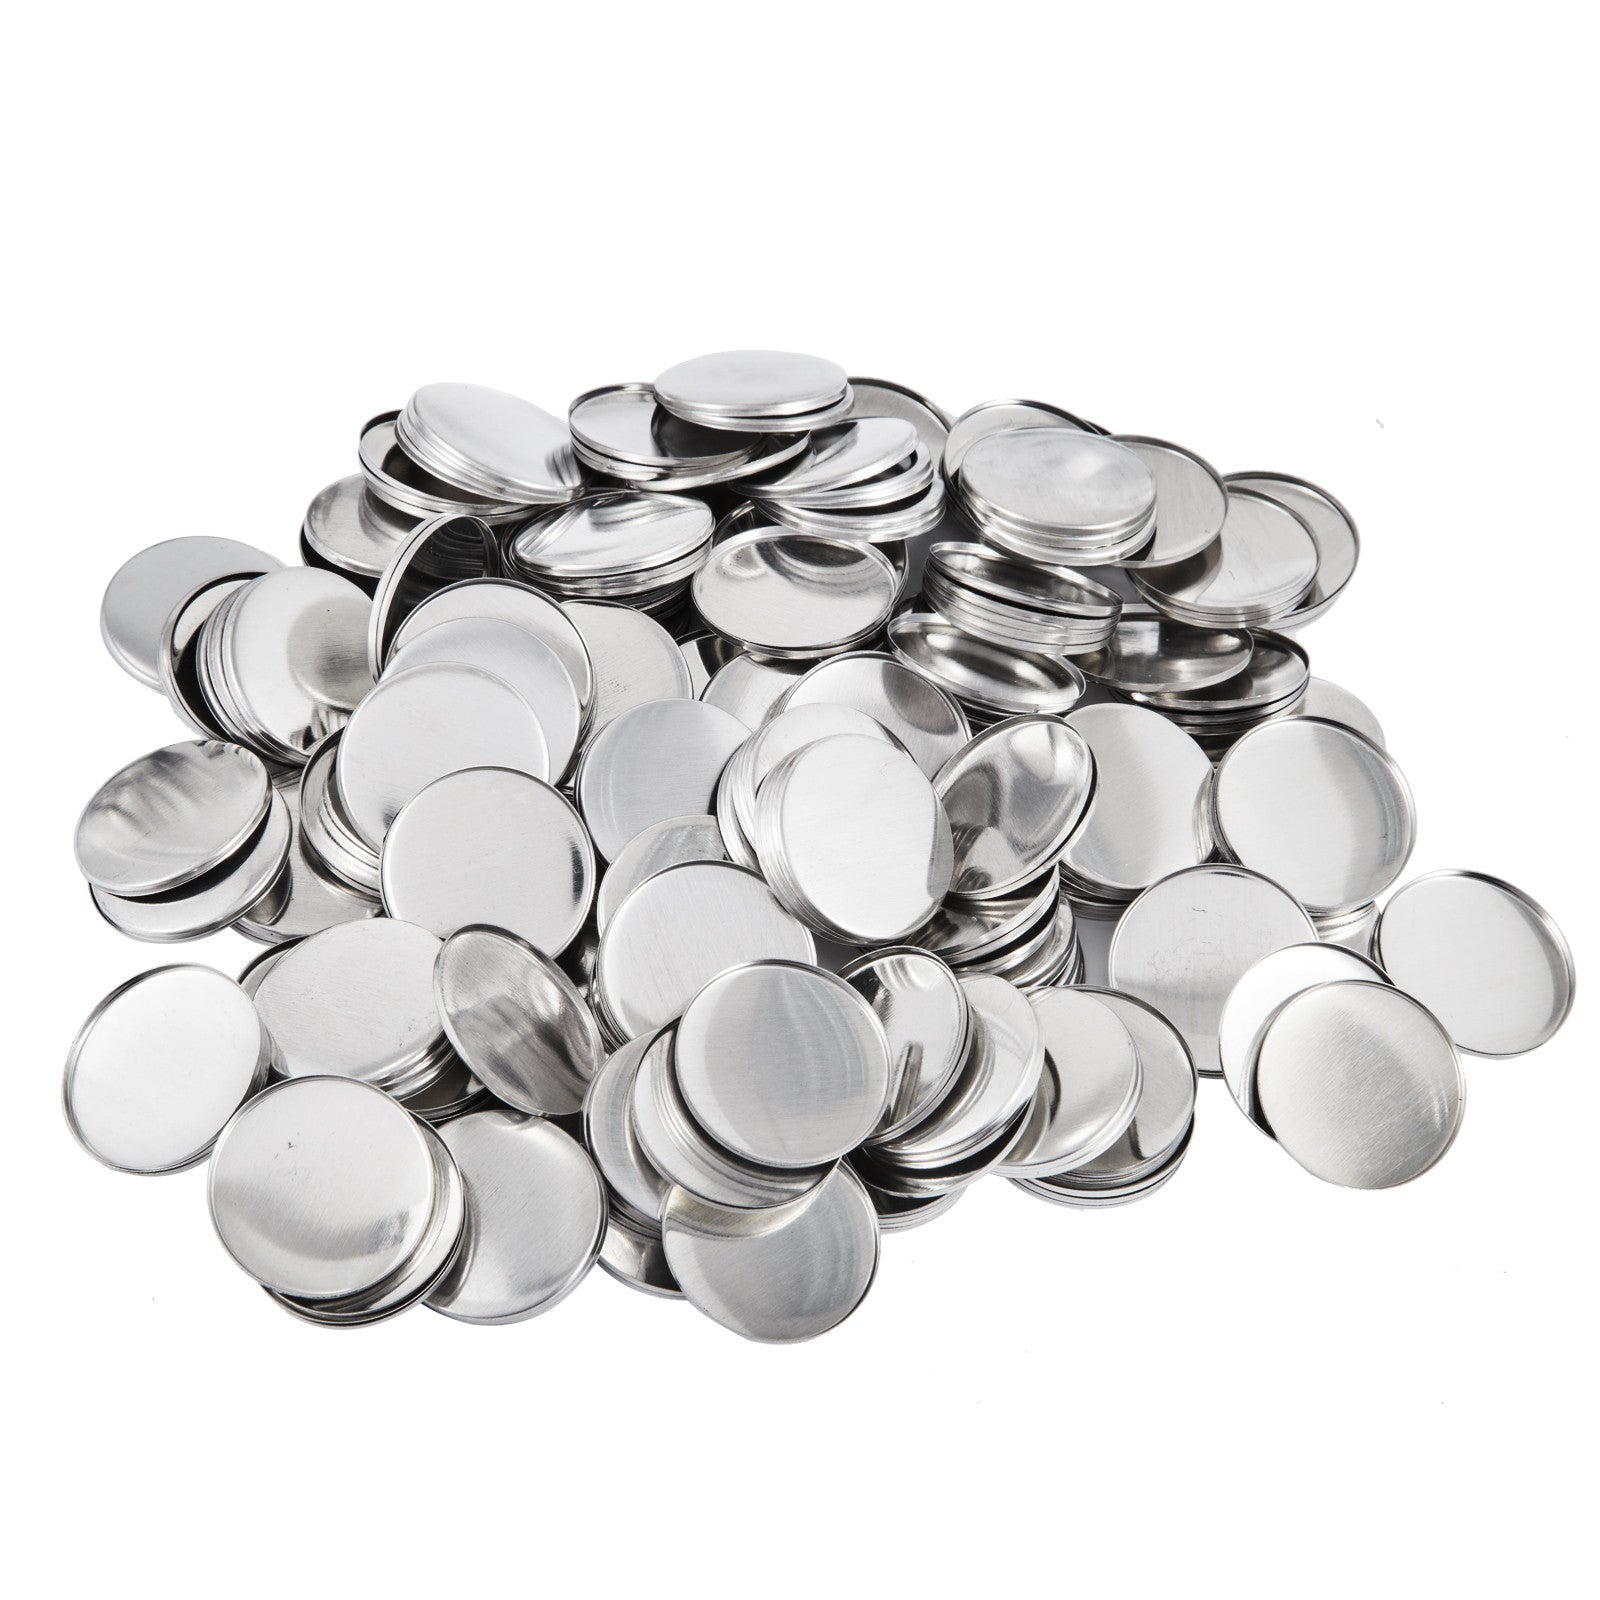 "2000pcs 25mm 1"" Button For Badge Maker Machine Customize Plastic Cover Supplies"